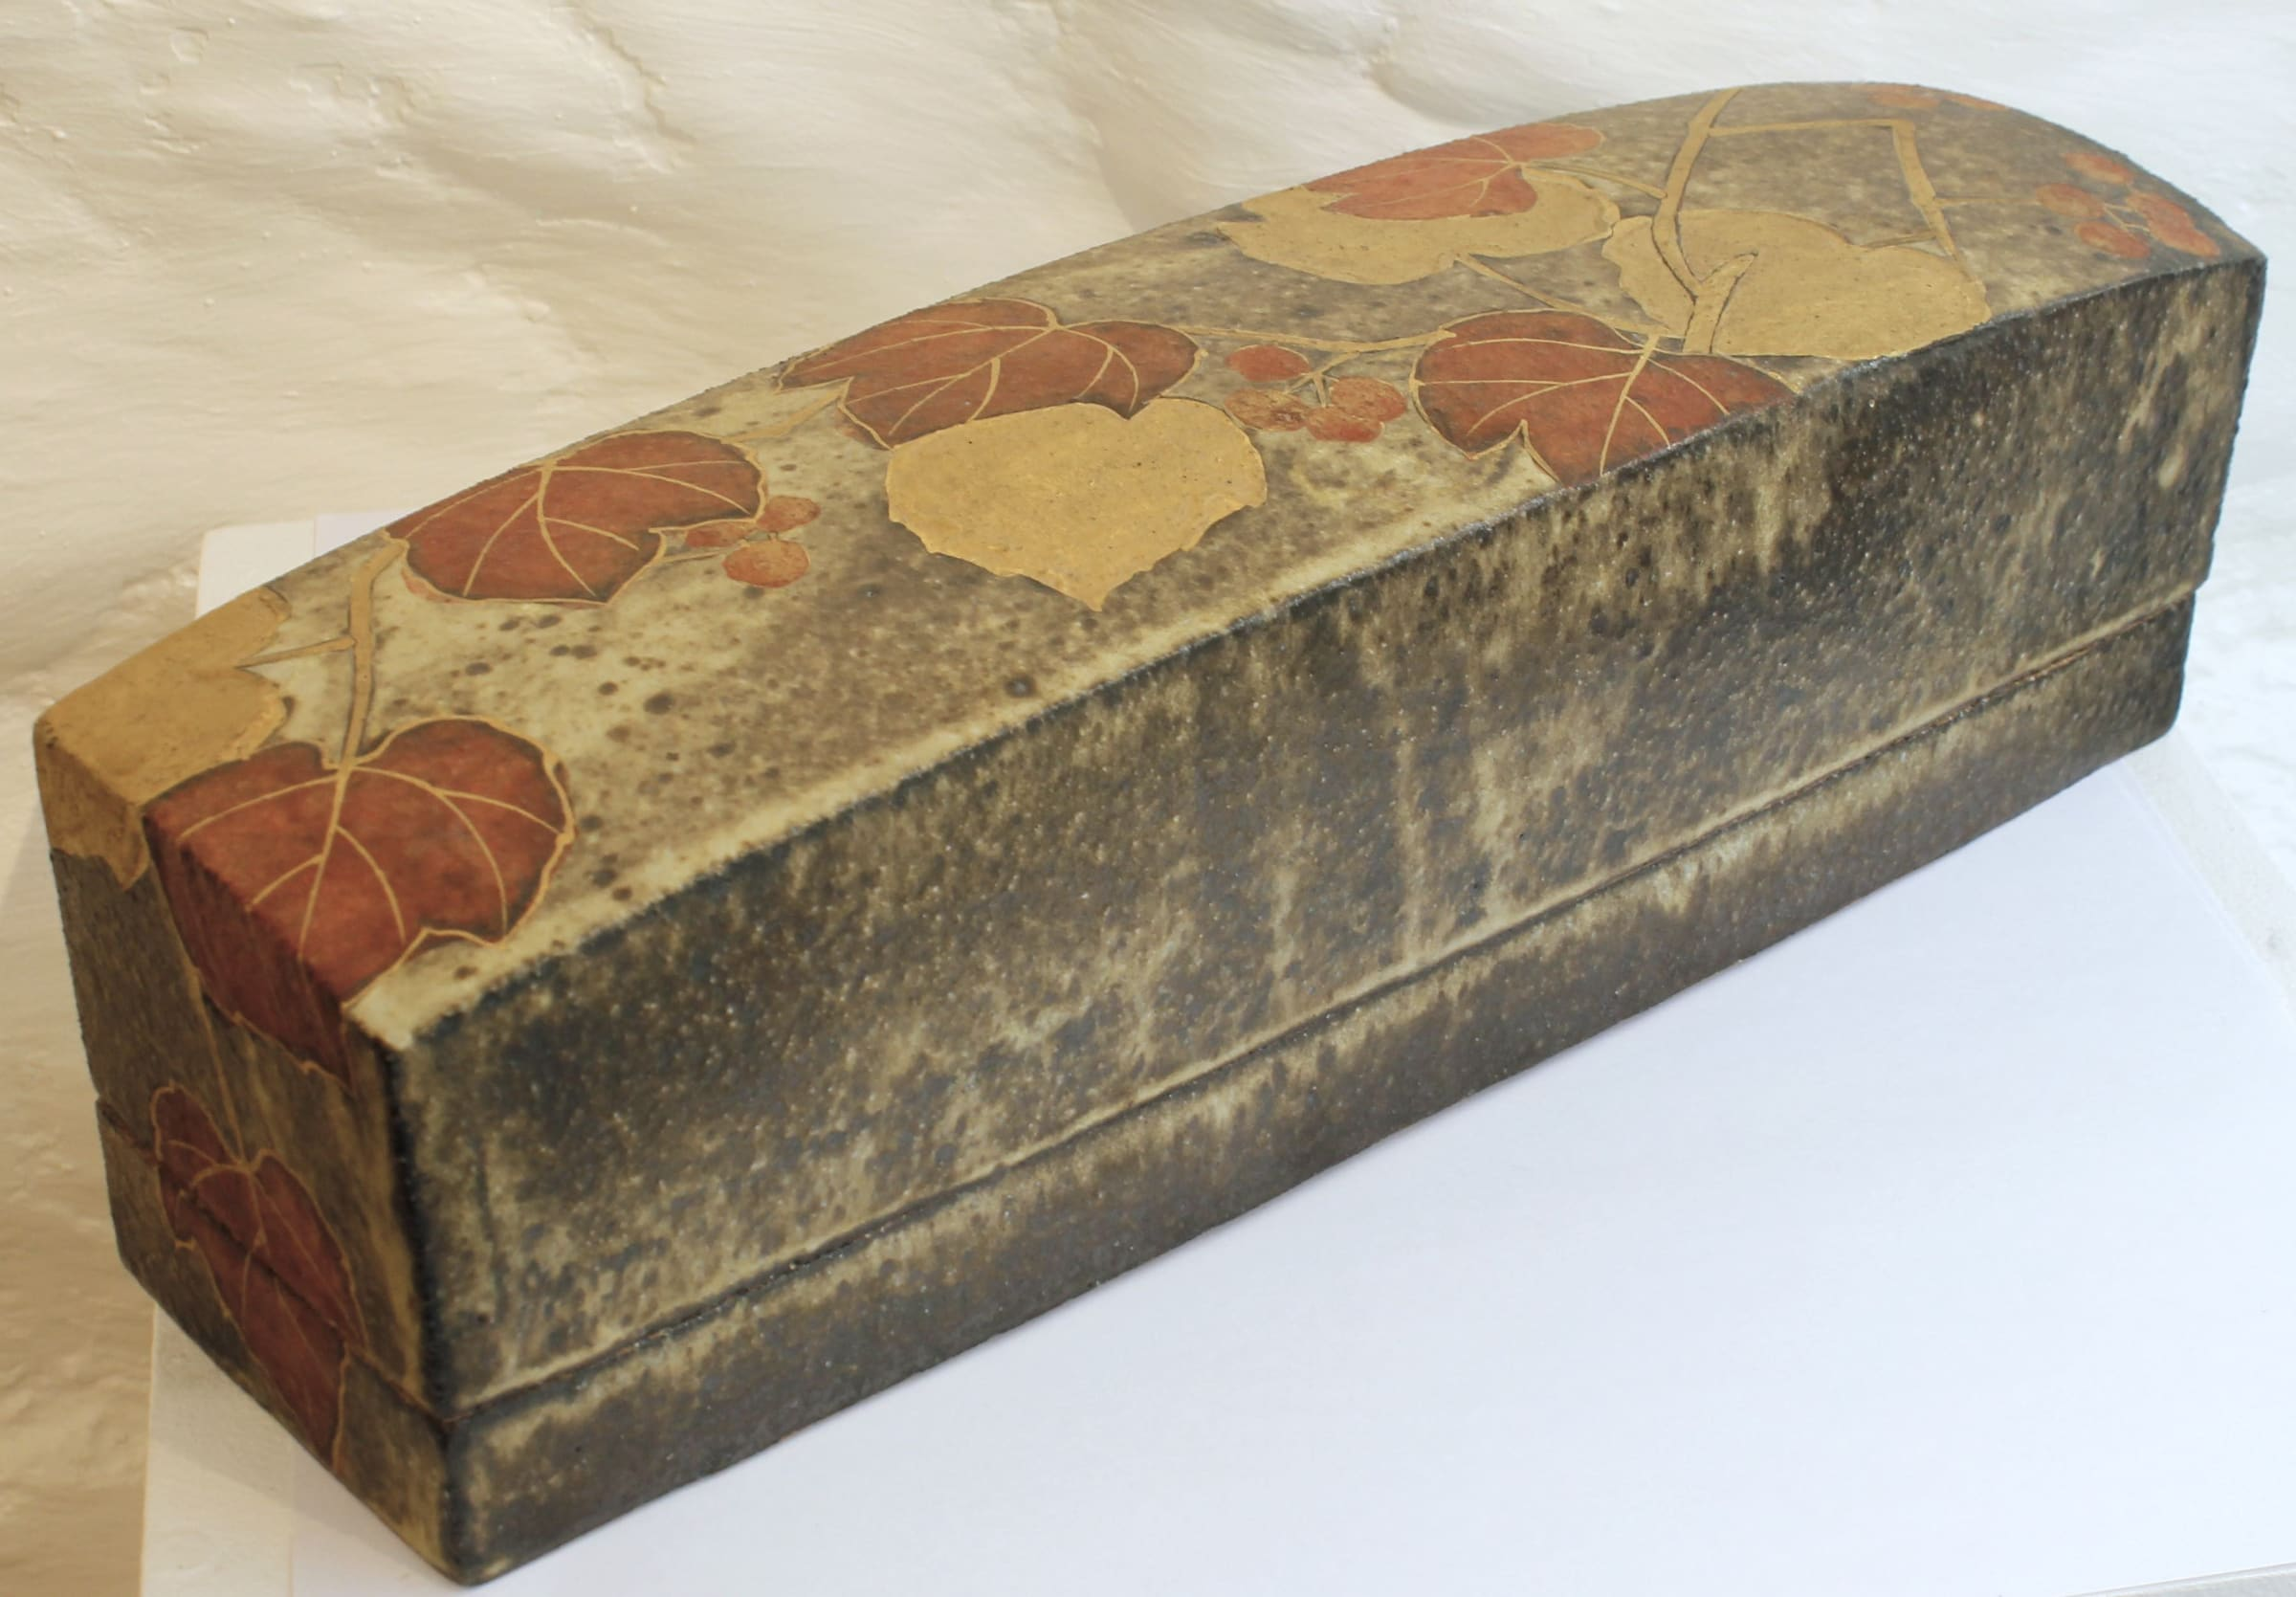 """<span class=""""link fancybox-details-link""""><a href=""""/artists/191-tadami-hirota/works/4958-tadami-hirota-long-rectangular-box-with-vine-leaves-2017/"""">View Detail Page</a></span><div class=""""artist""""><strong>Tadami Hirota</strong></div> b. 1949 <div class=""""title""""><em>Long Rectangular Box with Vine Leaves</em>, 2017</div> <div class=""""dimensions"""">h. 10 x w. 34 x d. 9.5 cm </div><div class=""""price"""">£1,000.00</div><div class=""""copyright_line"""">OwnArt: £ 100 x 10 Months, 0% APR</div>"""